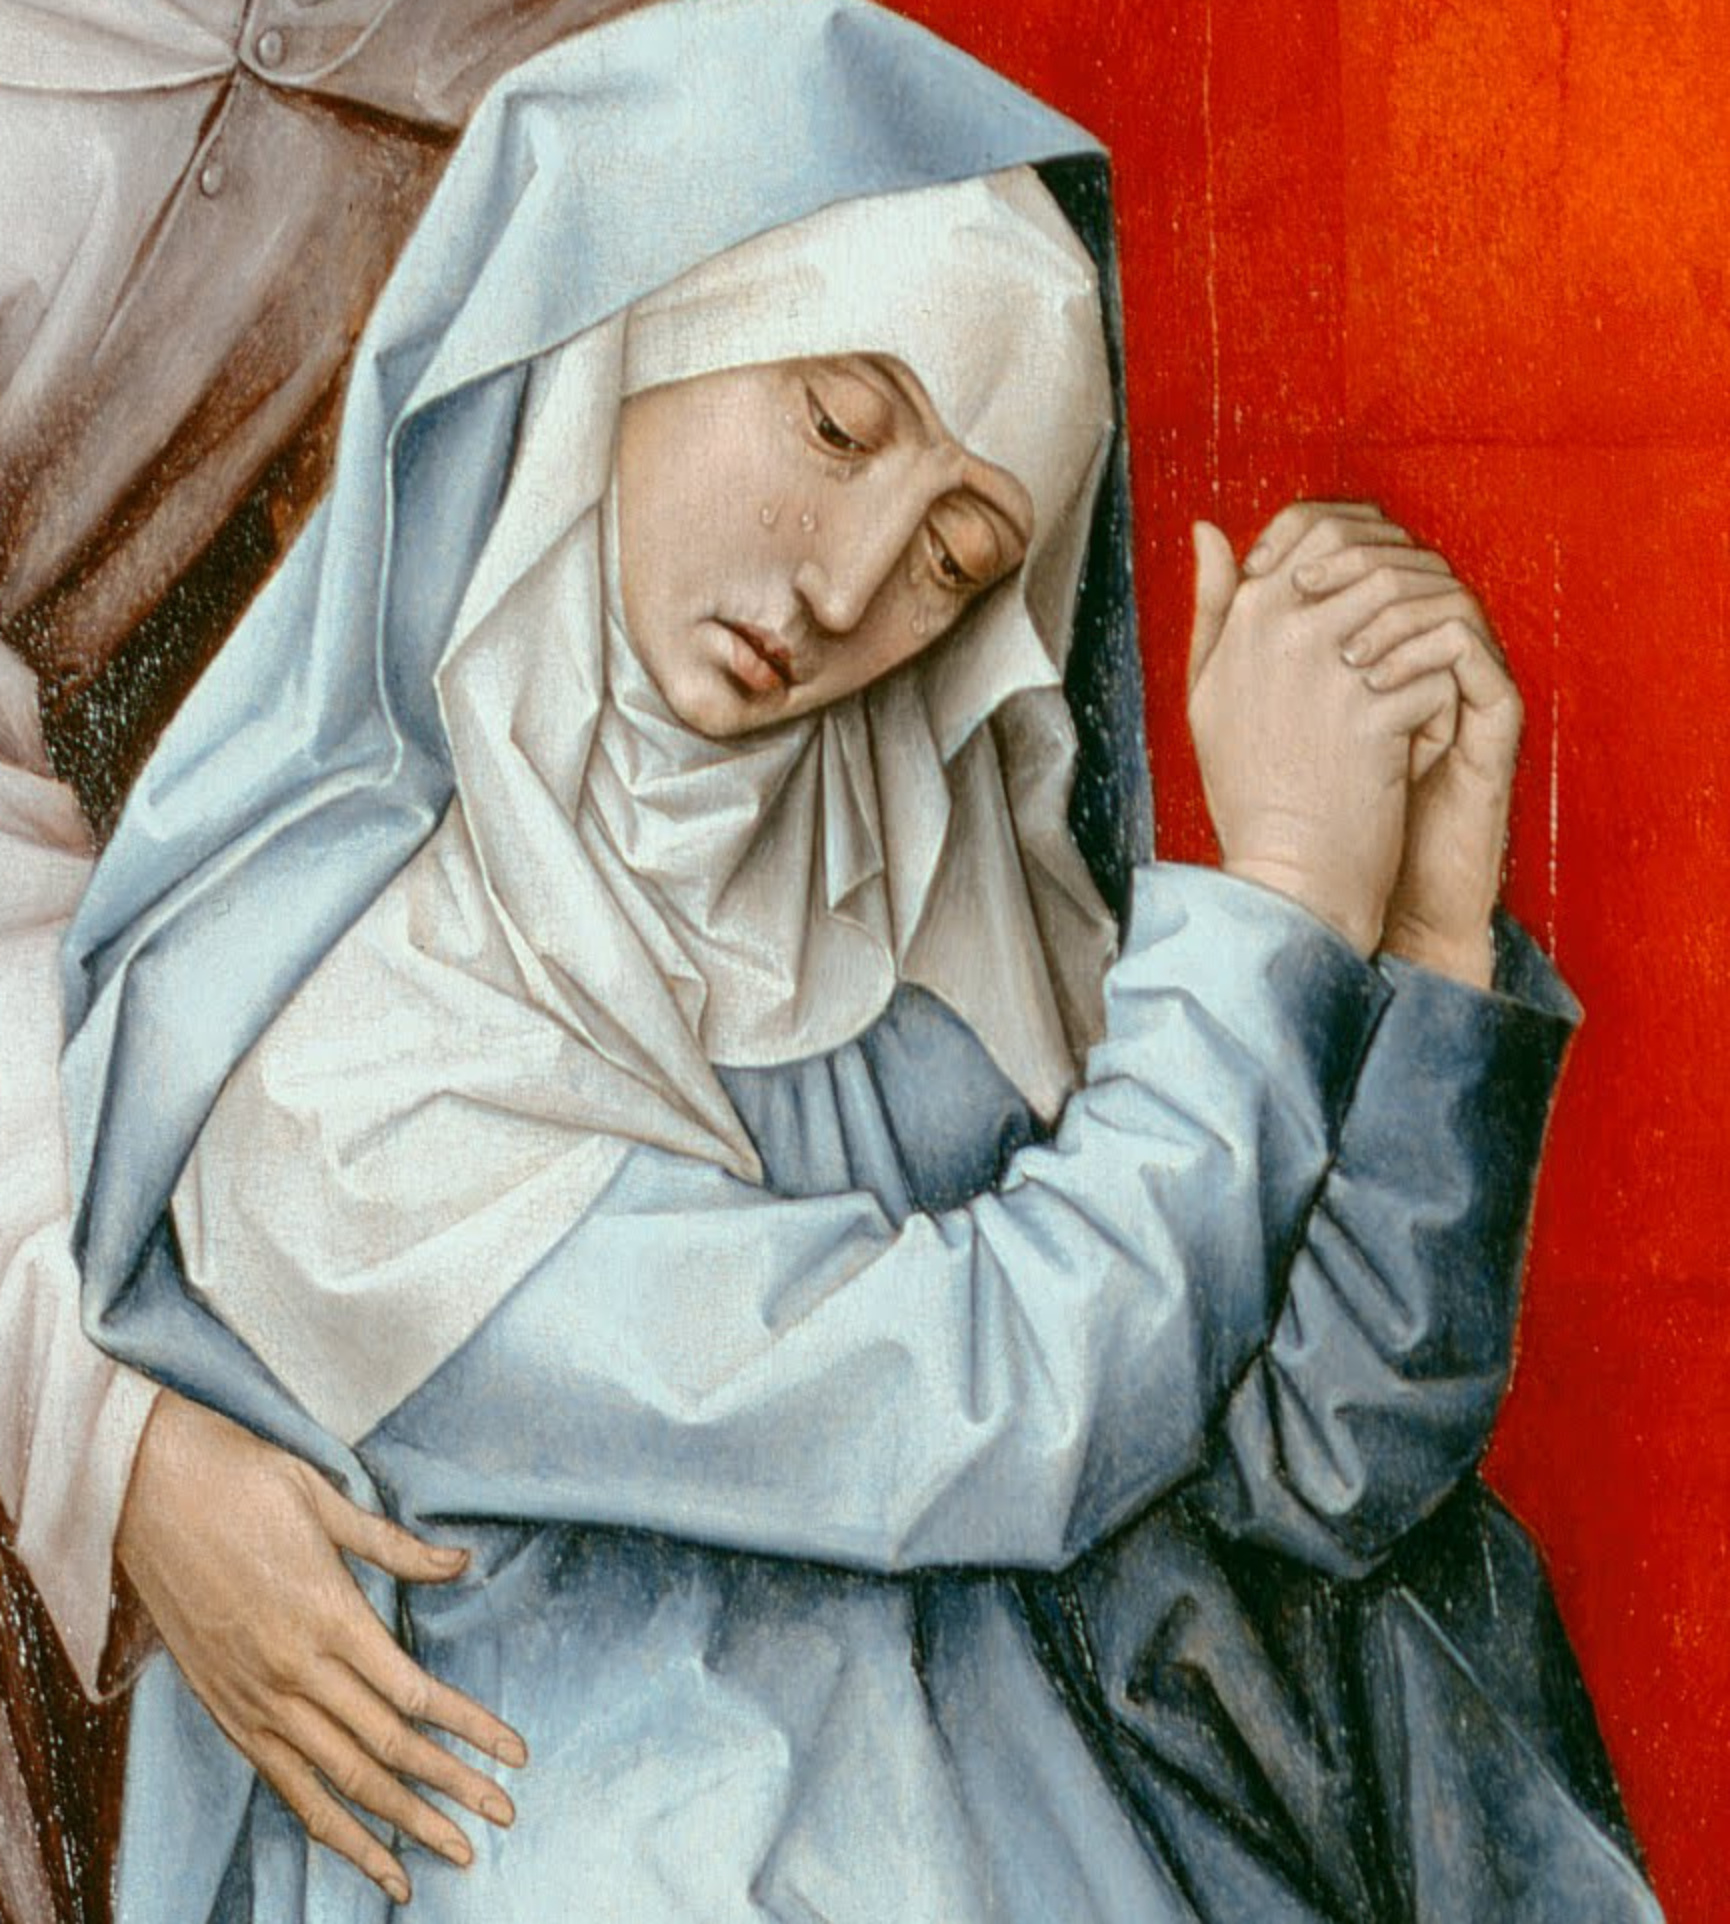 Rogier_van_der_Weyden,_Netherlandish_(active_Tournai_and_Brussels)_-_The_Crucifixion,_with_the_Virgin_and_Saint_John_the_Evangelist_Mourning_-_Google_Art_Project_6